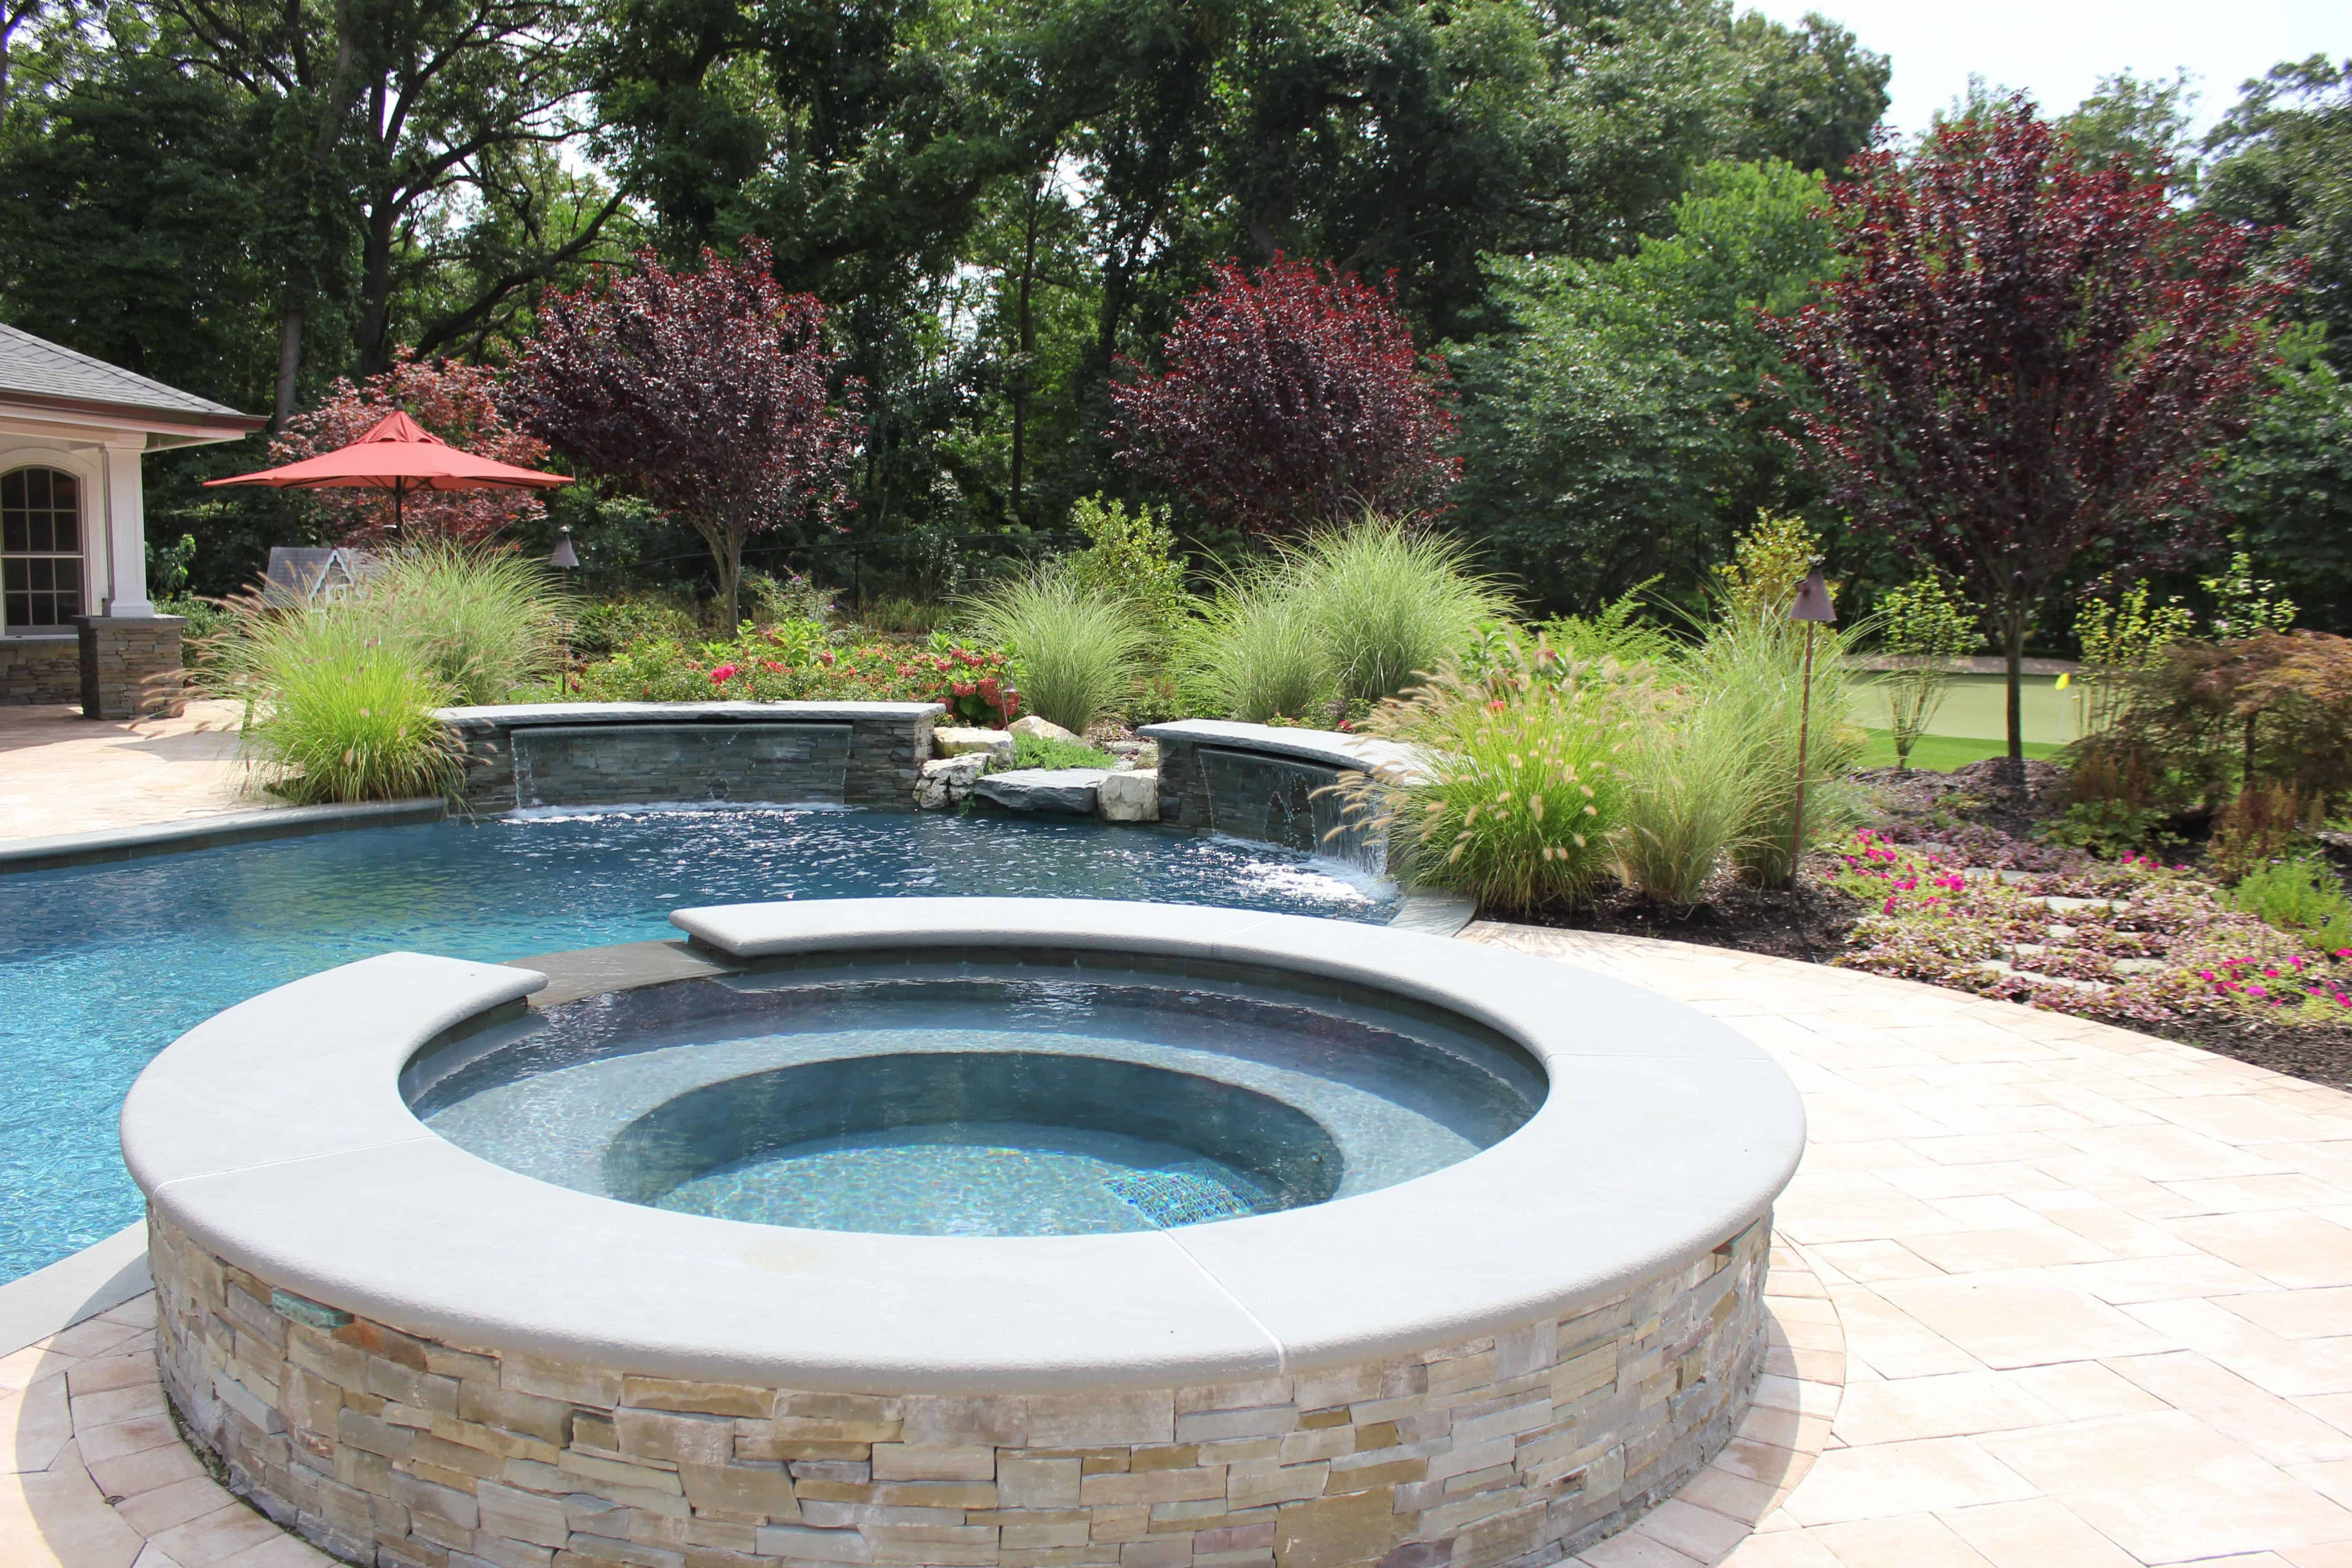 Custom Gunite Hot Tub with Spill Over veneered with stacked Bluestone and radial Bluestone Treads - Westhampton, Long Island NY